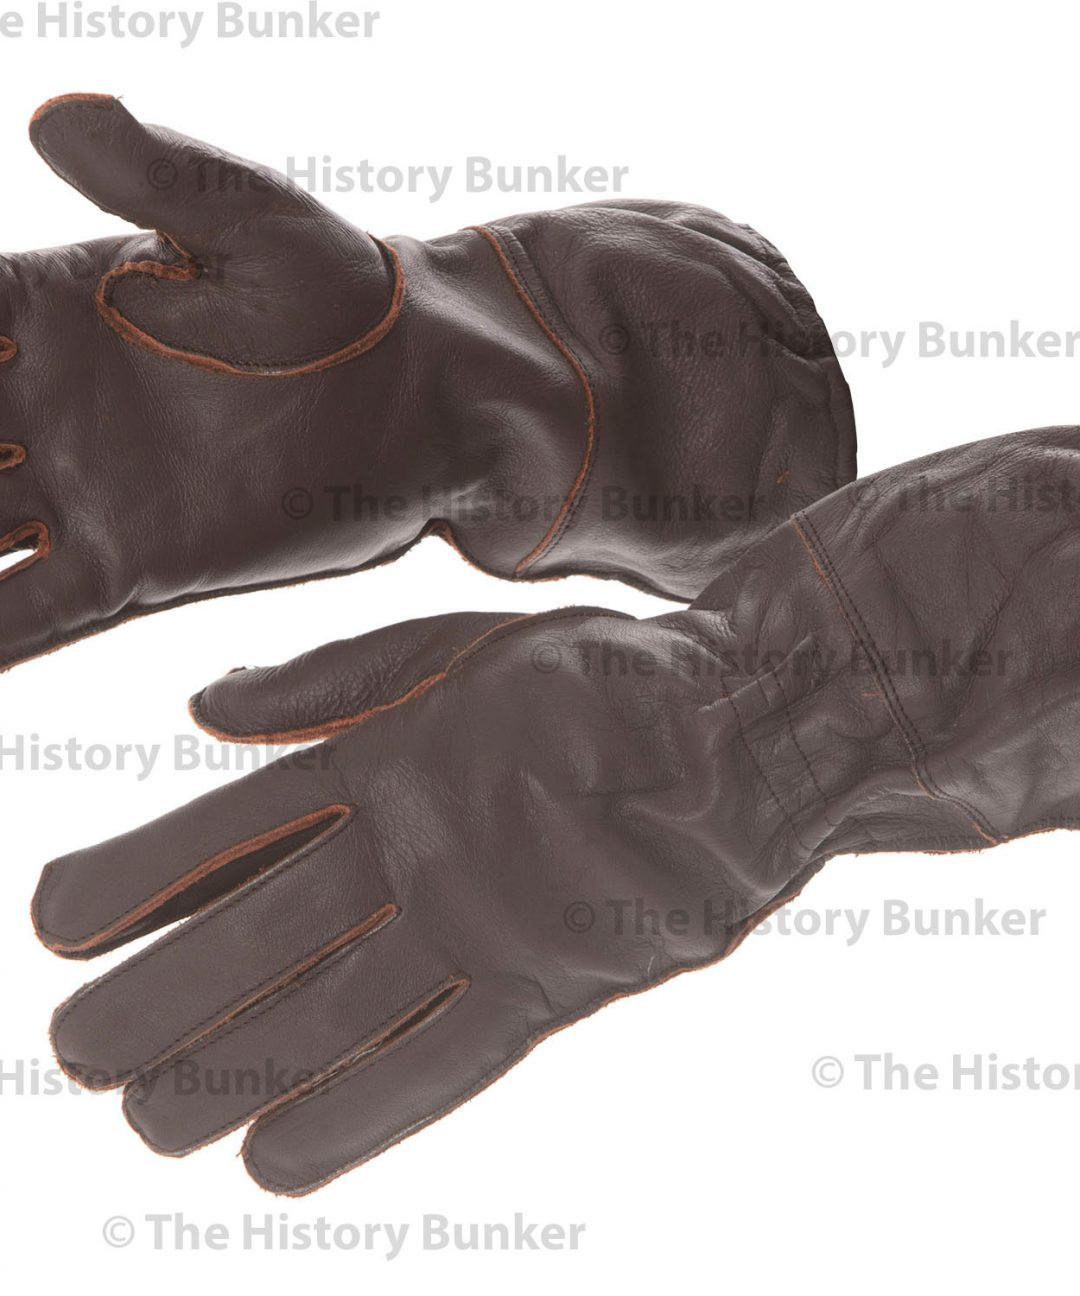 ww2 german fallschirmjager gloves